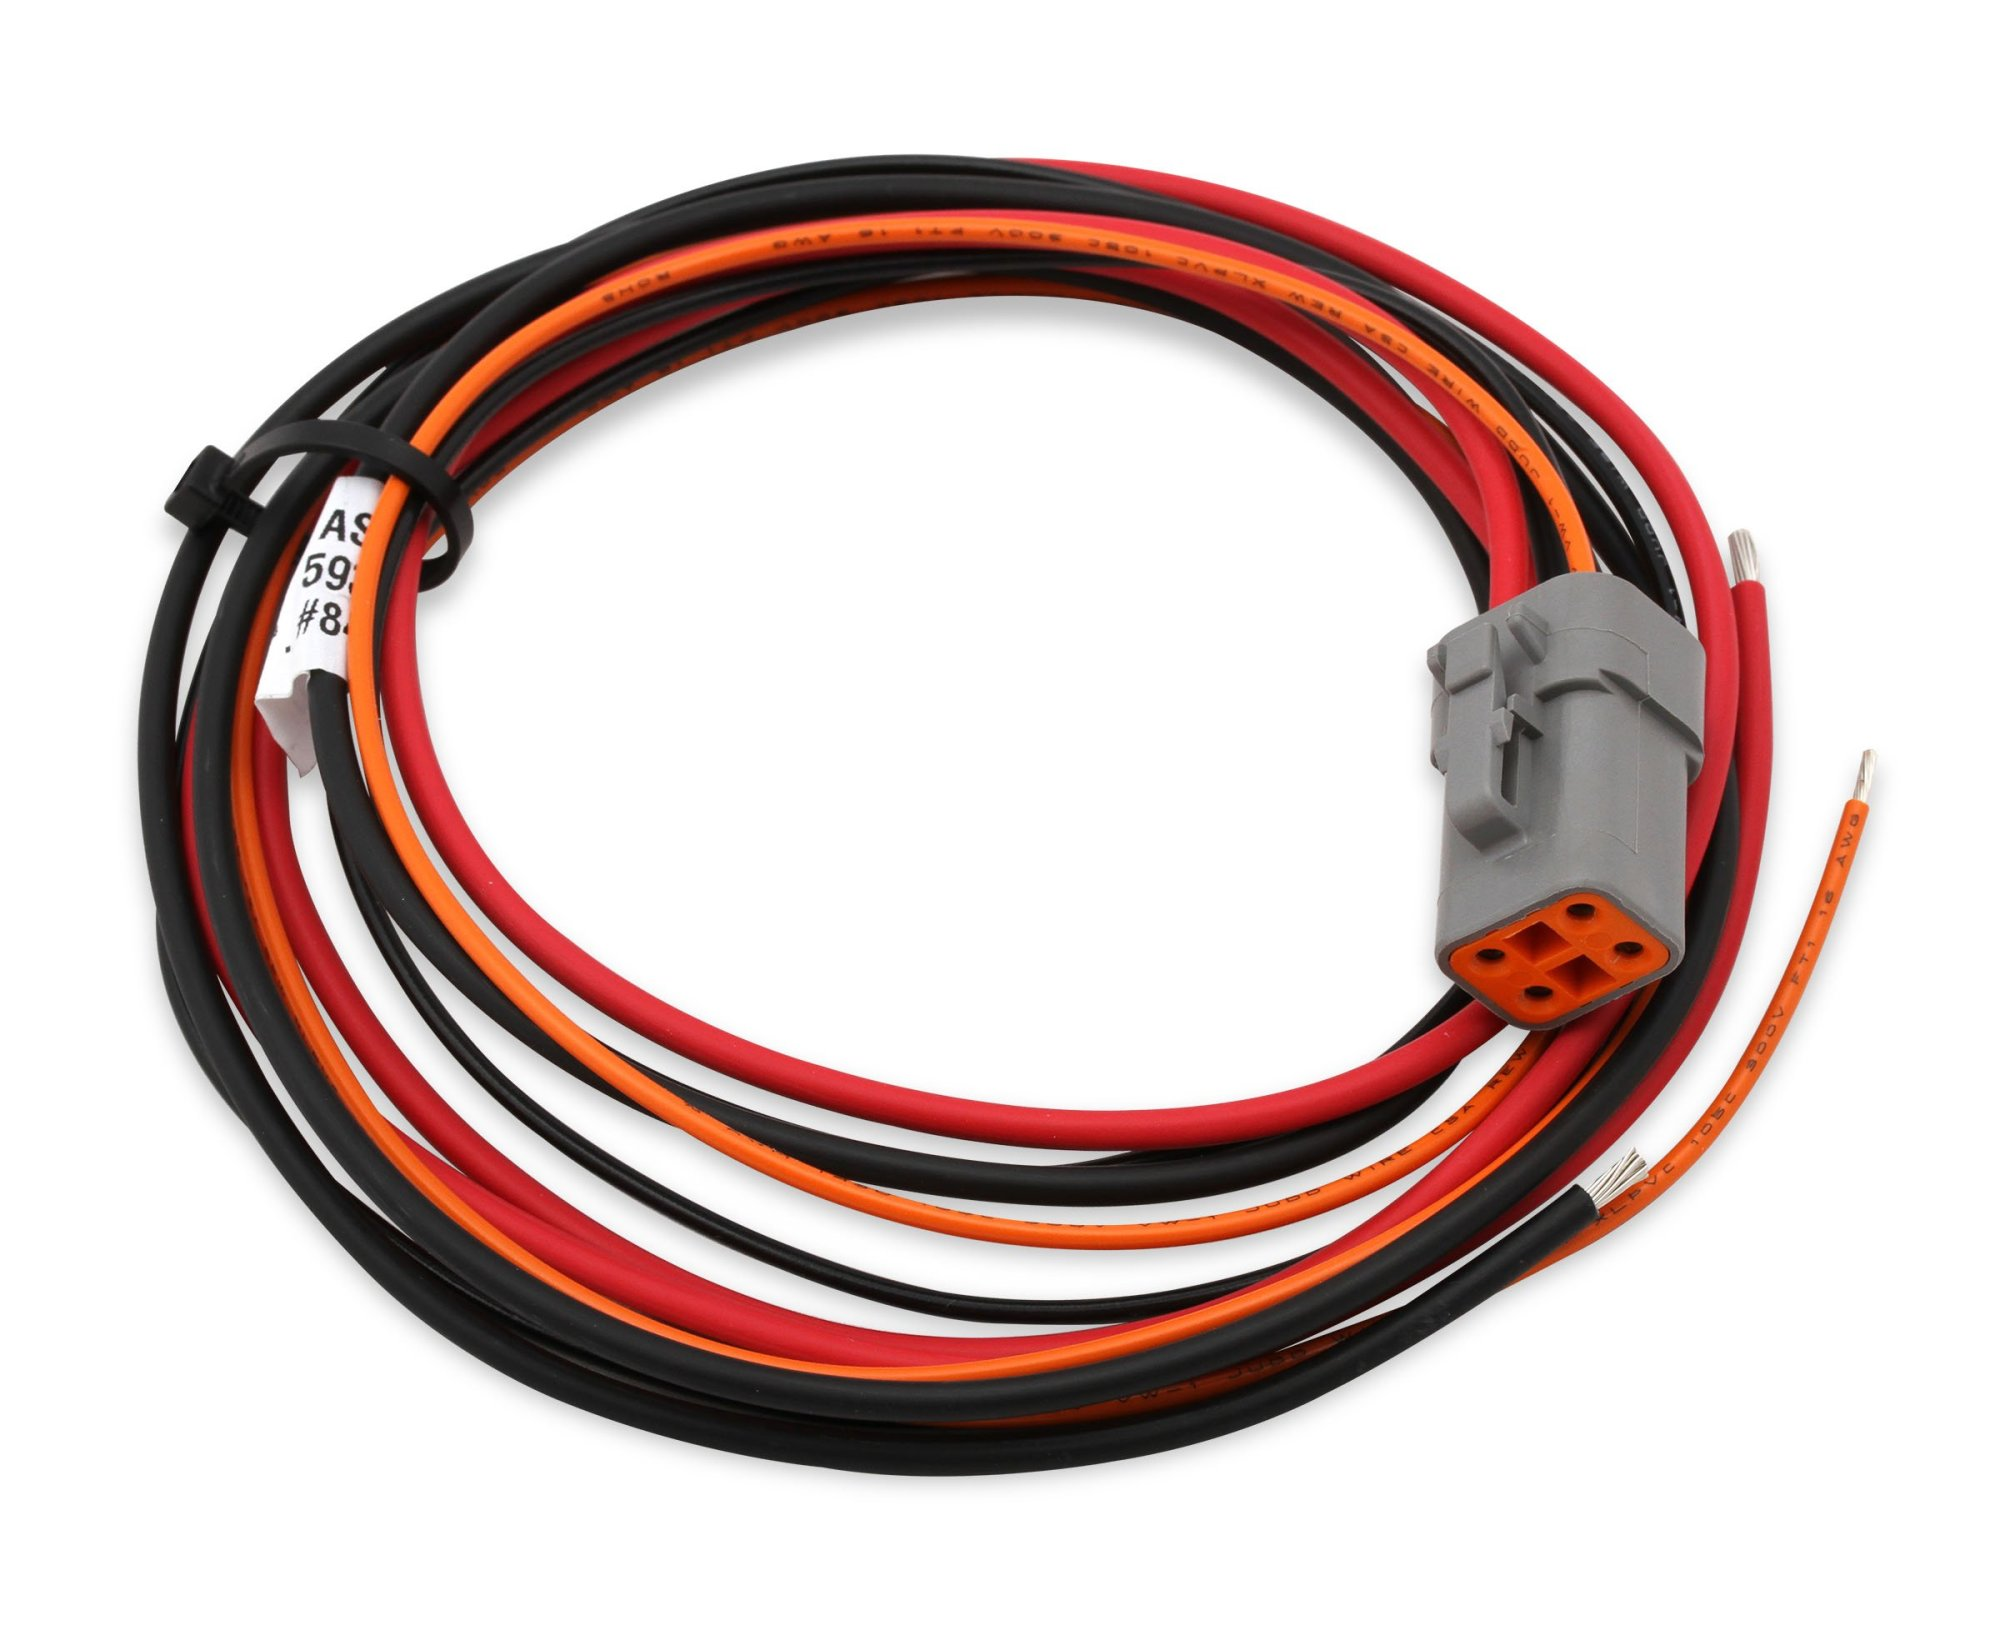 hight resolution of 8895 replacement harness for 7720 image